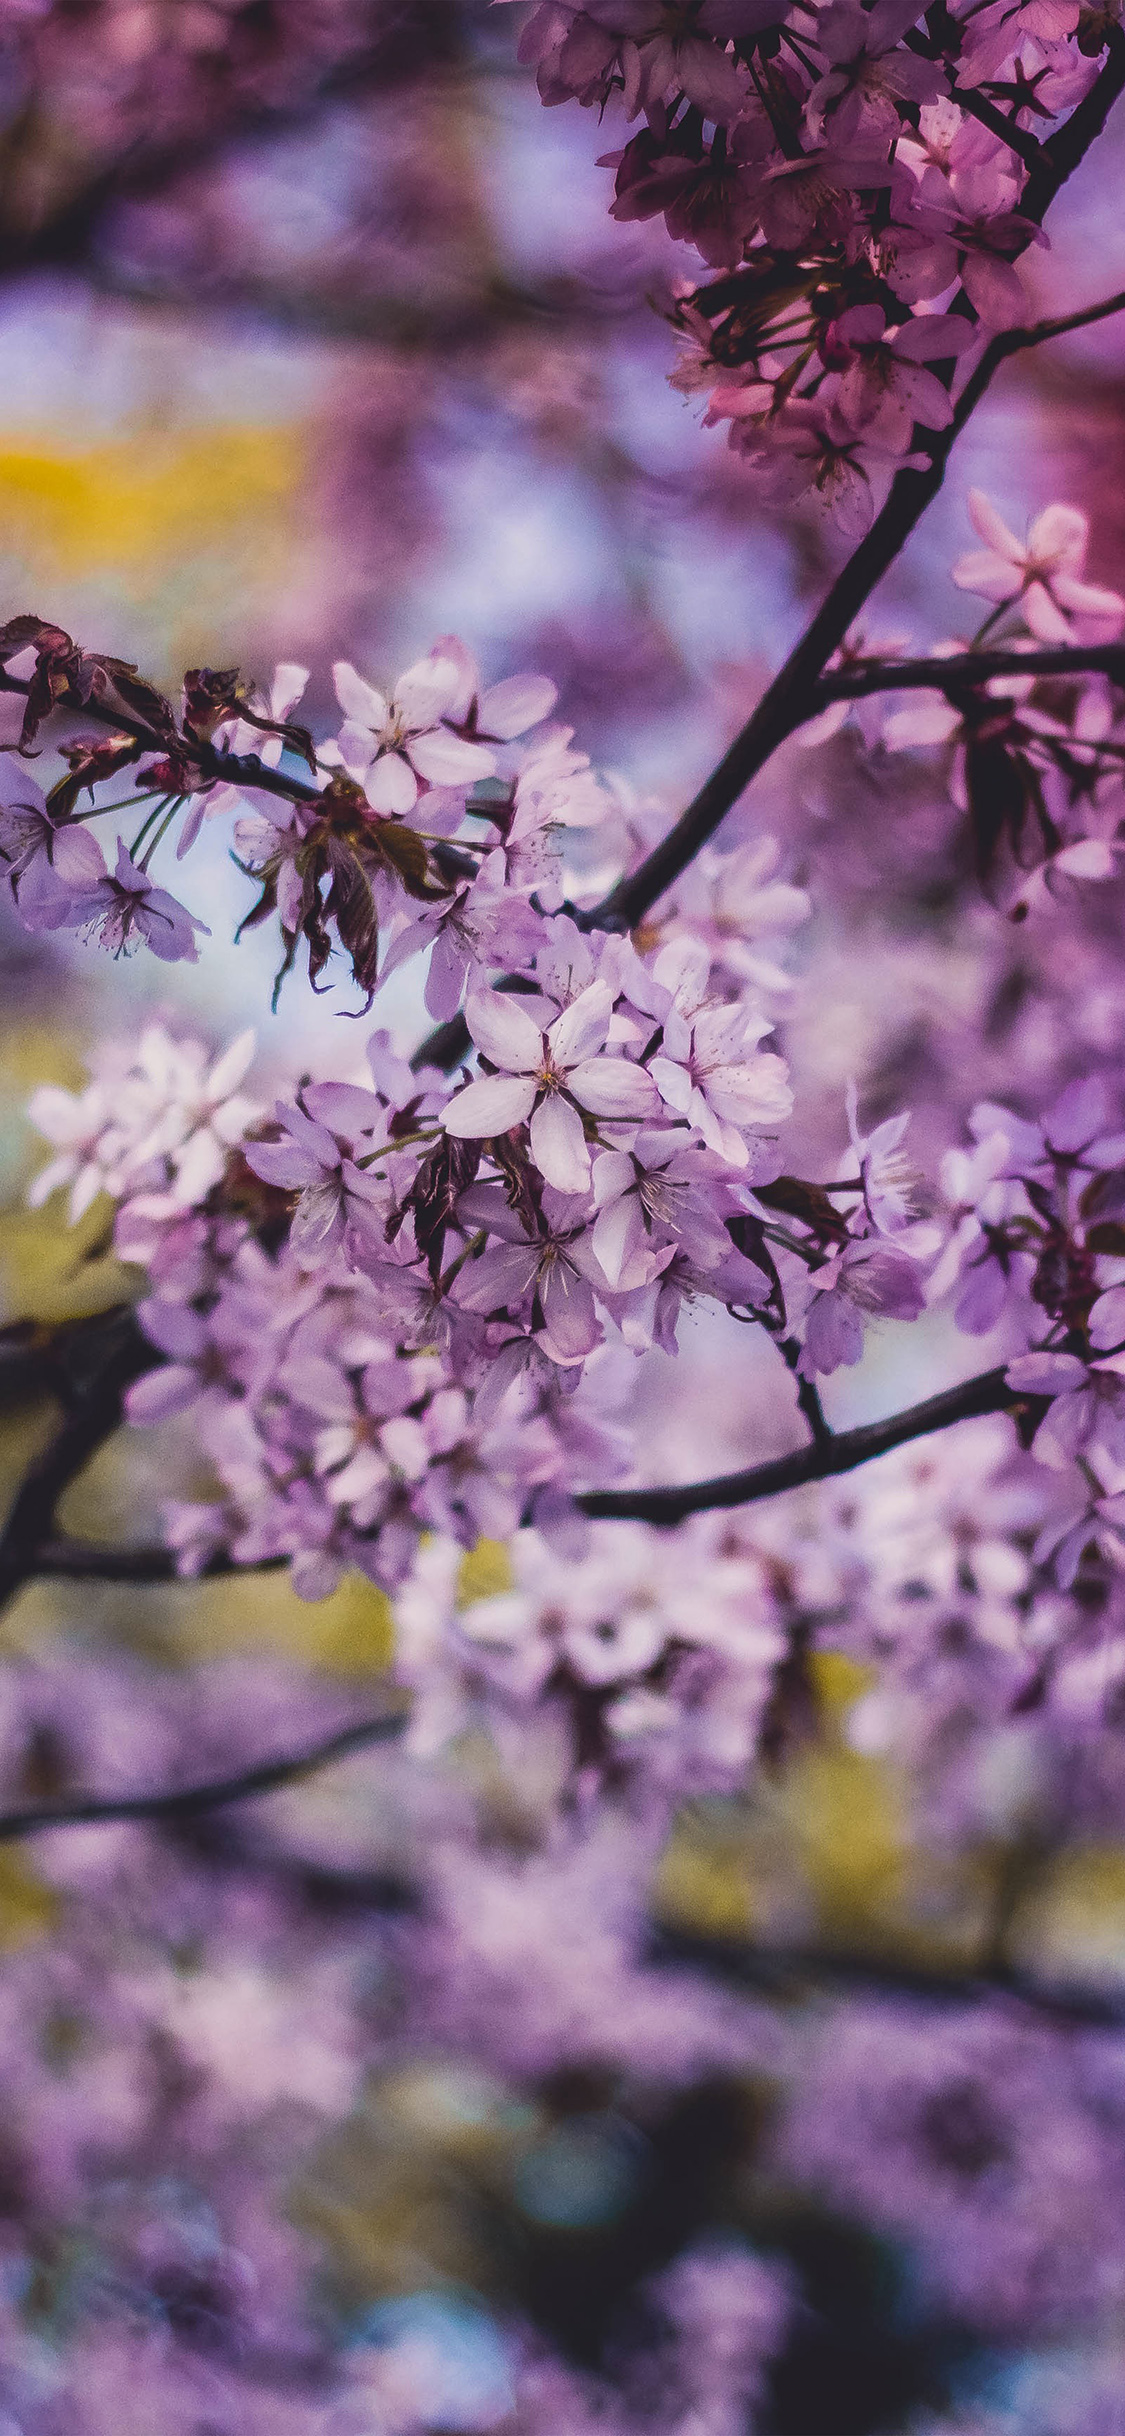 Ipapers Co Ng97 Flower Pink Blue Nature Bokeh Tree Spring